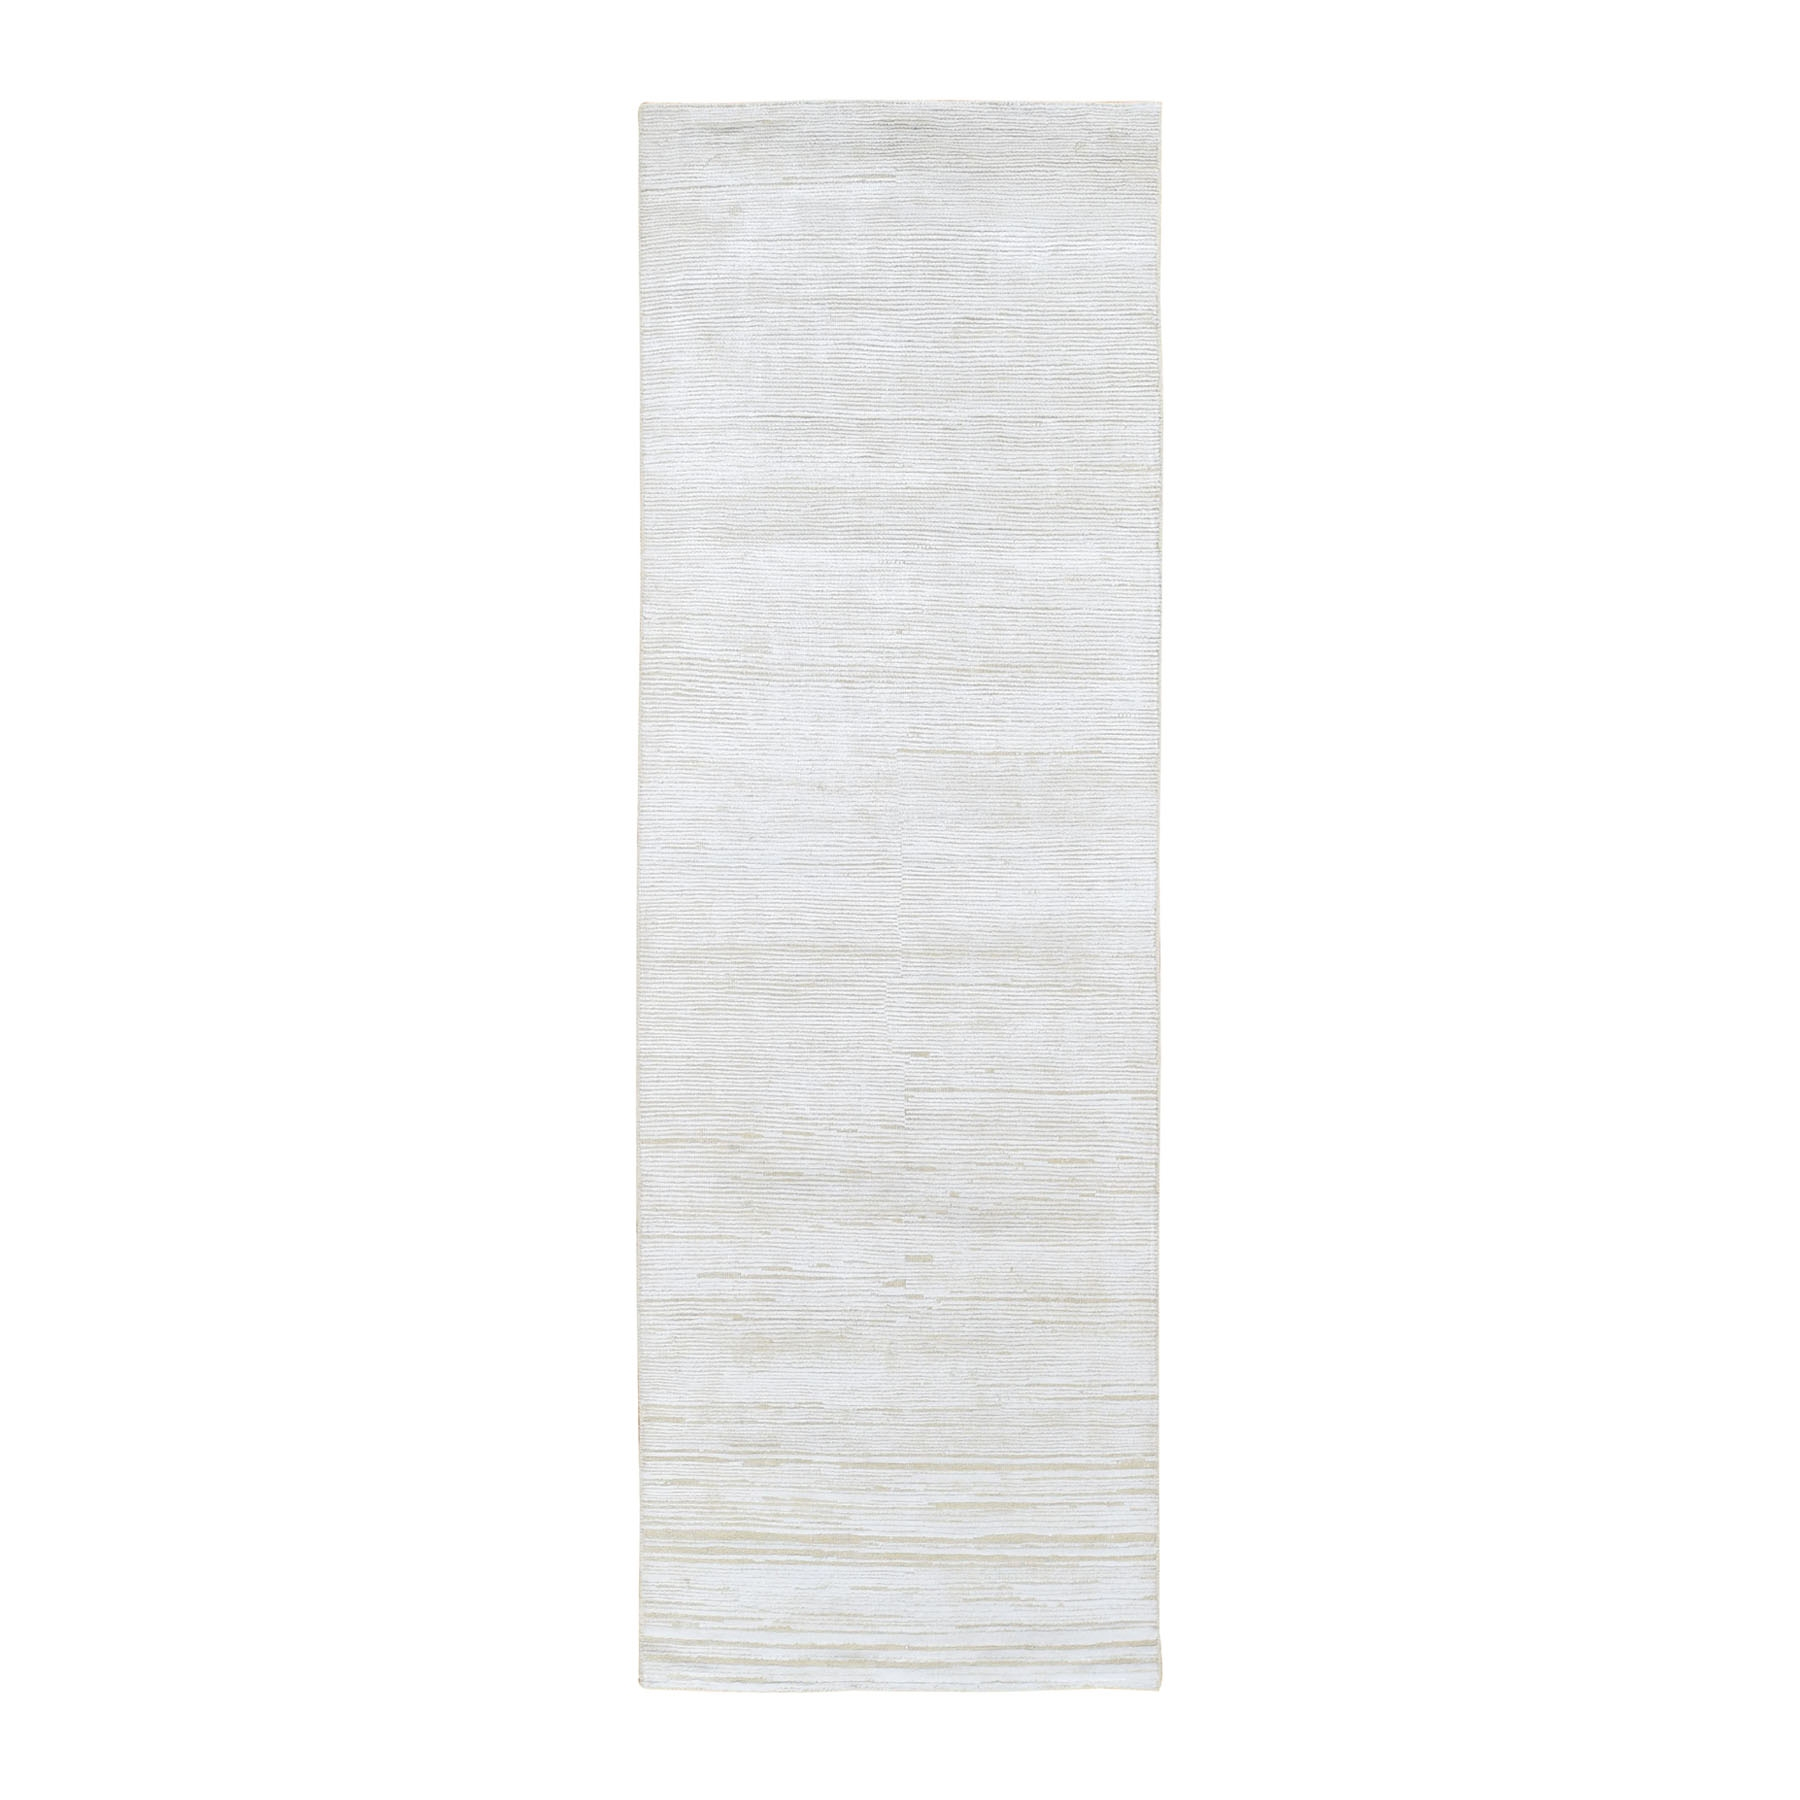 "2'5""x8'3"" Silk with Textured Wool Tone on Tone Gabbeh Design Hi-Lo Pile Oriental Runner Rug"